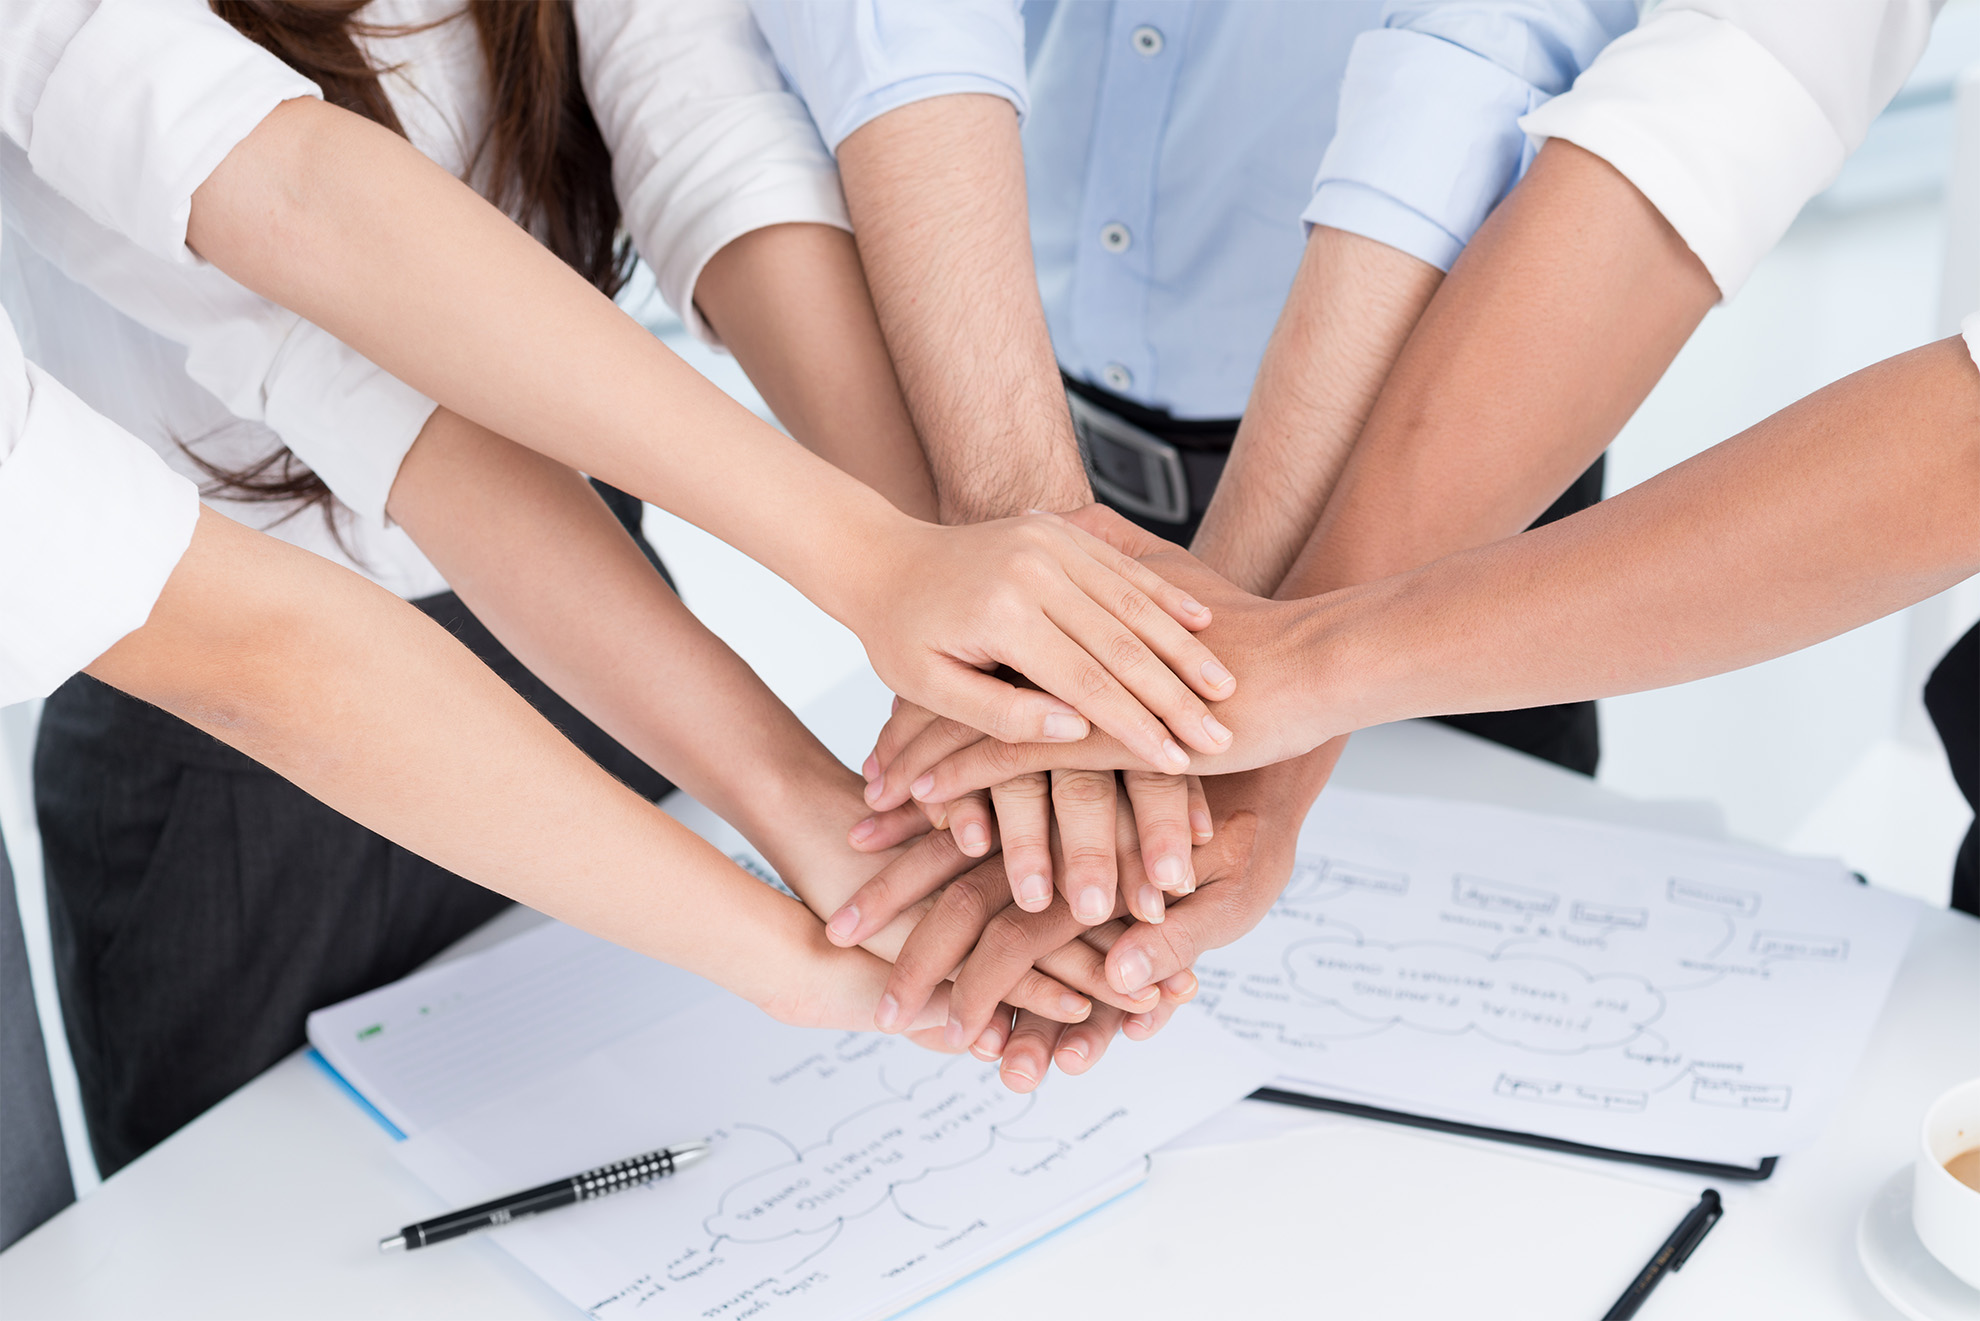 Closeup of people's hands working together